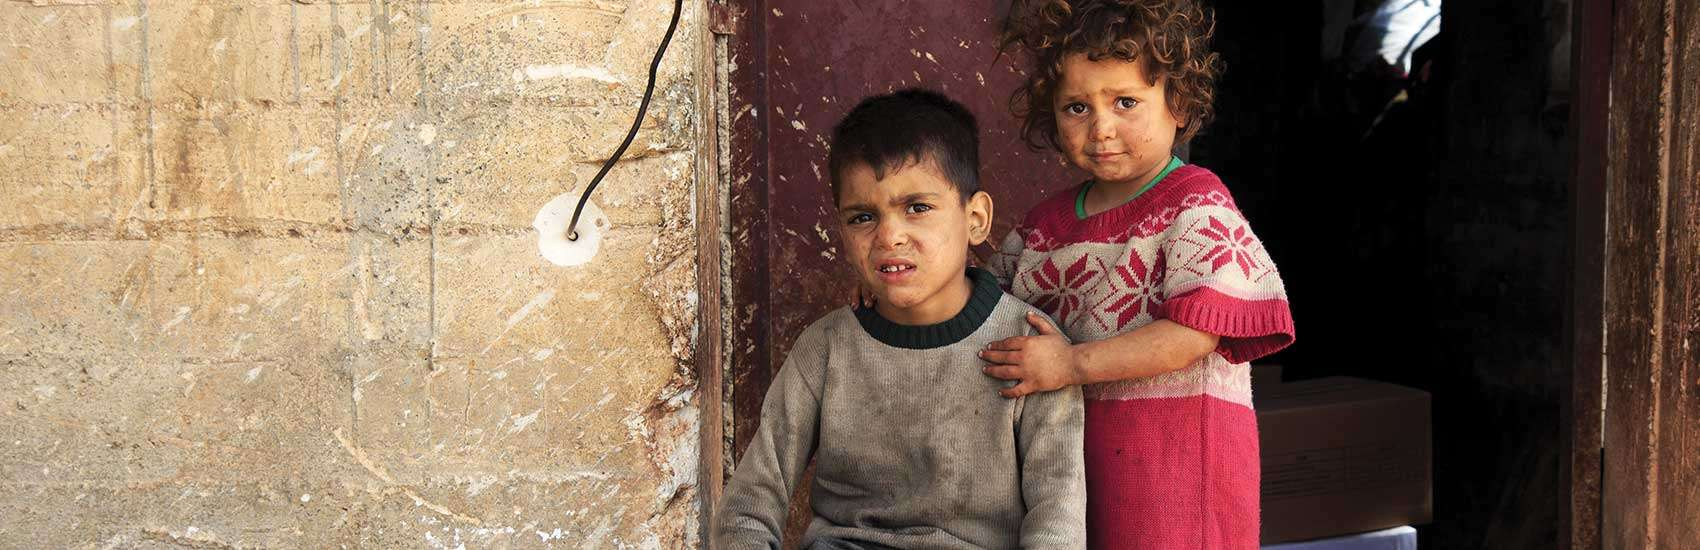 Siblings Mustafa*, age 5, and Fatima*, age 3, lean against the battered doorway of their family's temporary shelter in the suburbs of Idleb, Syria where they have been living for few months. The family was forced to flee their home due to violence and heavy bombardment. The building used to be a coal store so the children are constantly covered in black coal dust. Photo credit: Ahmad Baroudi | Save the Children, May 2015.